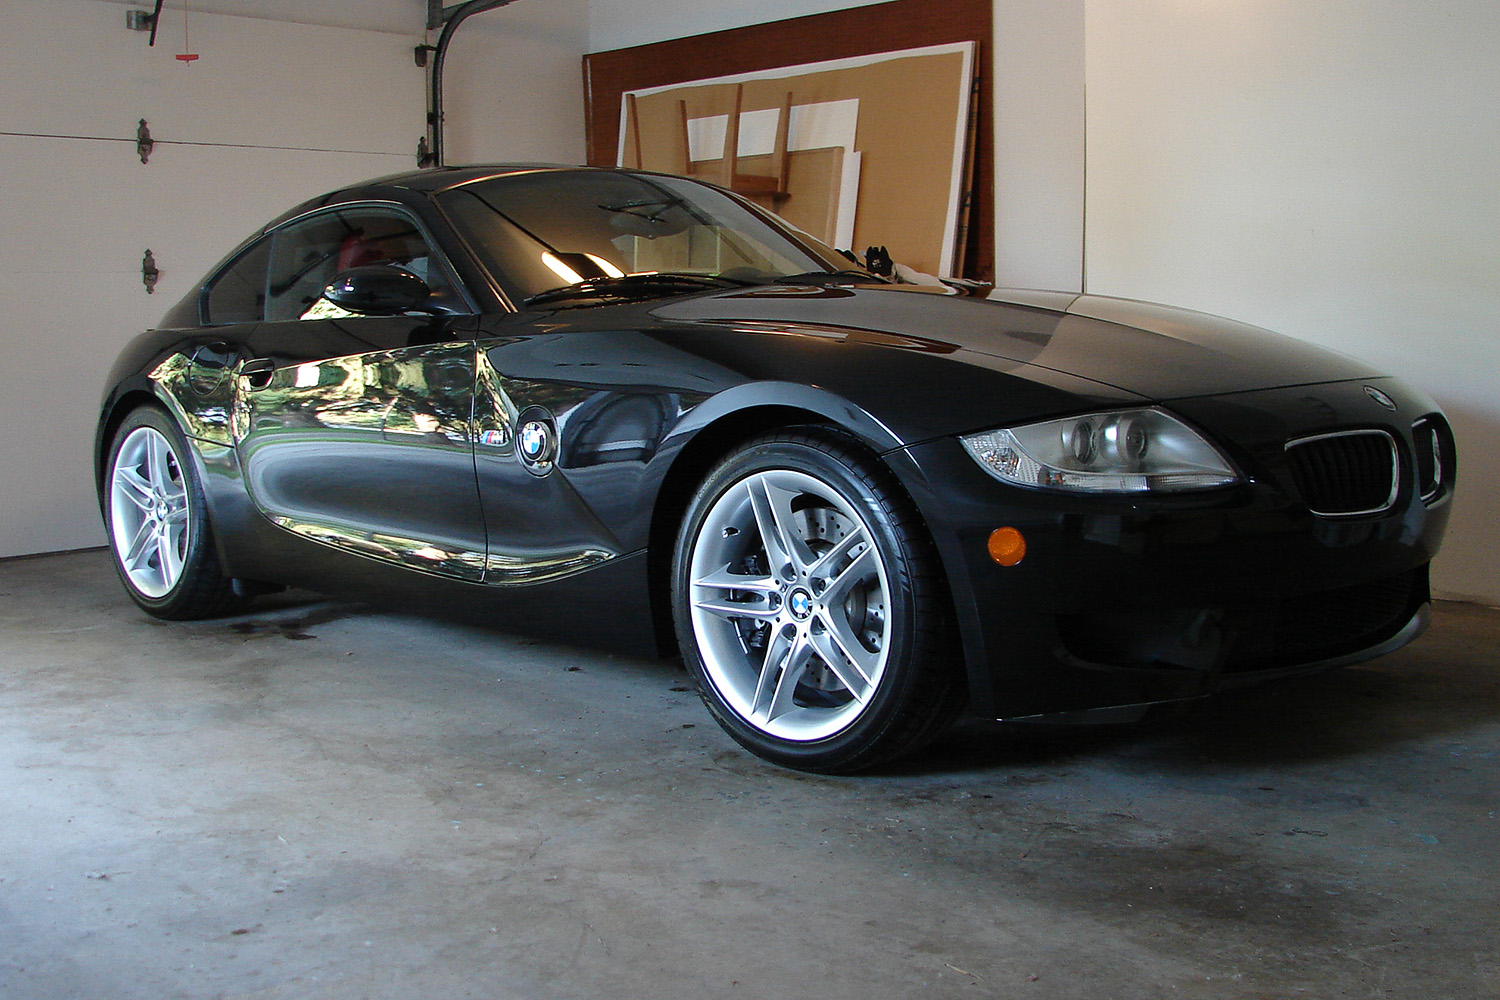 z4-m-coupe.jpg